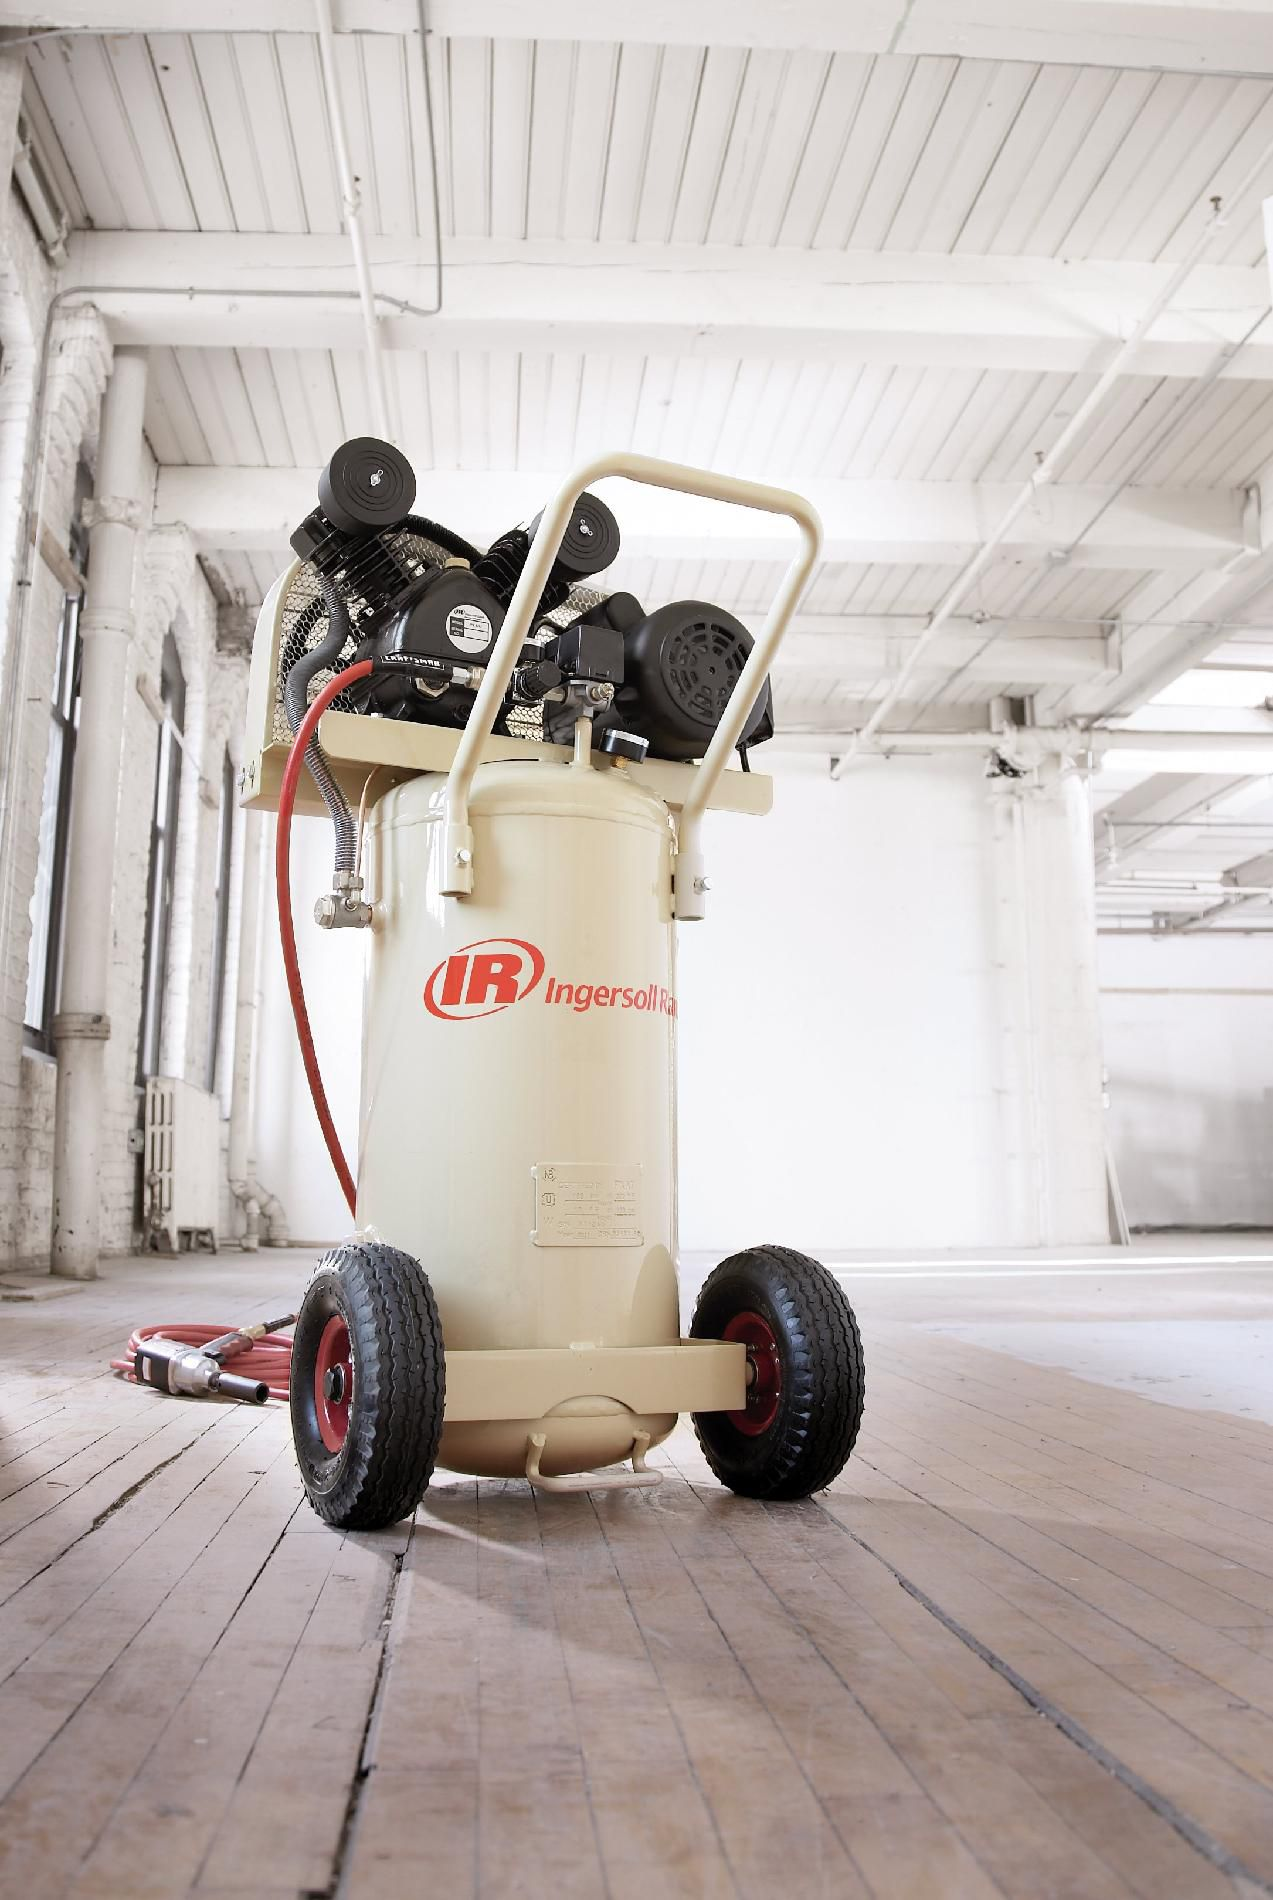 Ingersoll-Rand 20 Gallon Air Compressor, Vertical Tank, 2 HP #P1.5IU-A9